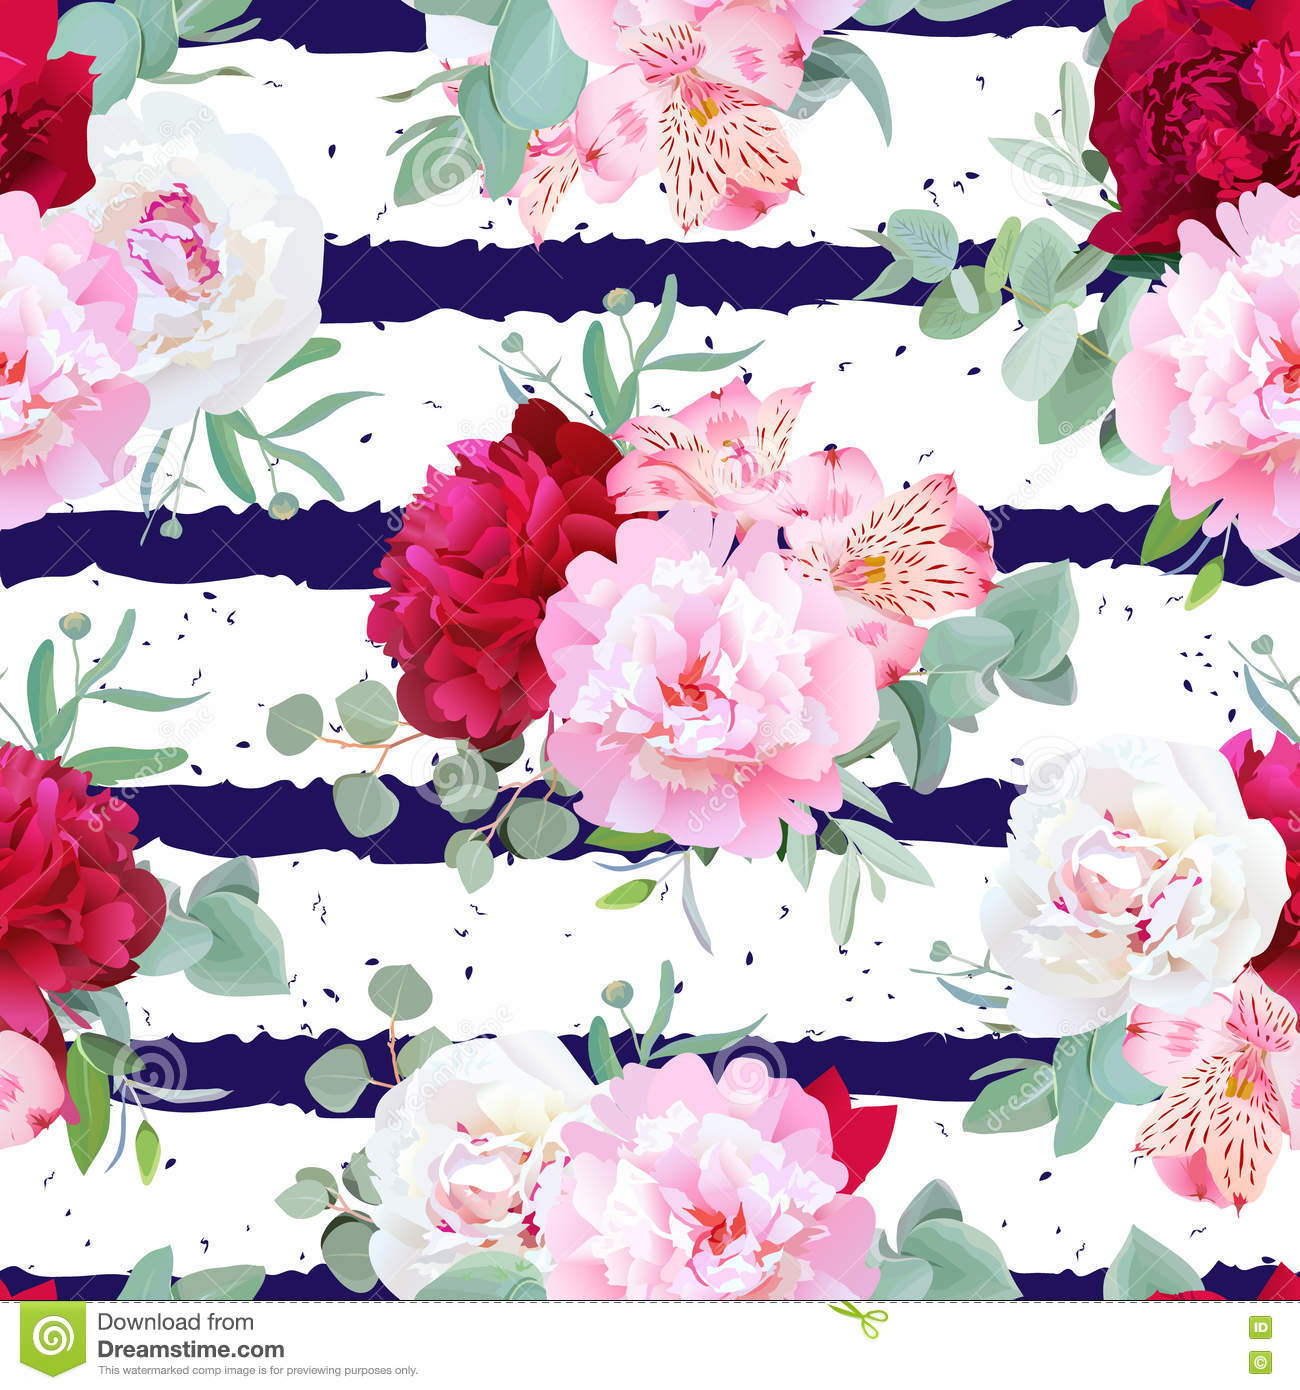 Navy Blue Striped Floral Seamless Vector Print With Peony